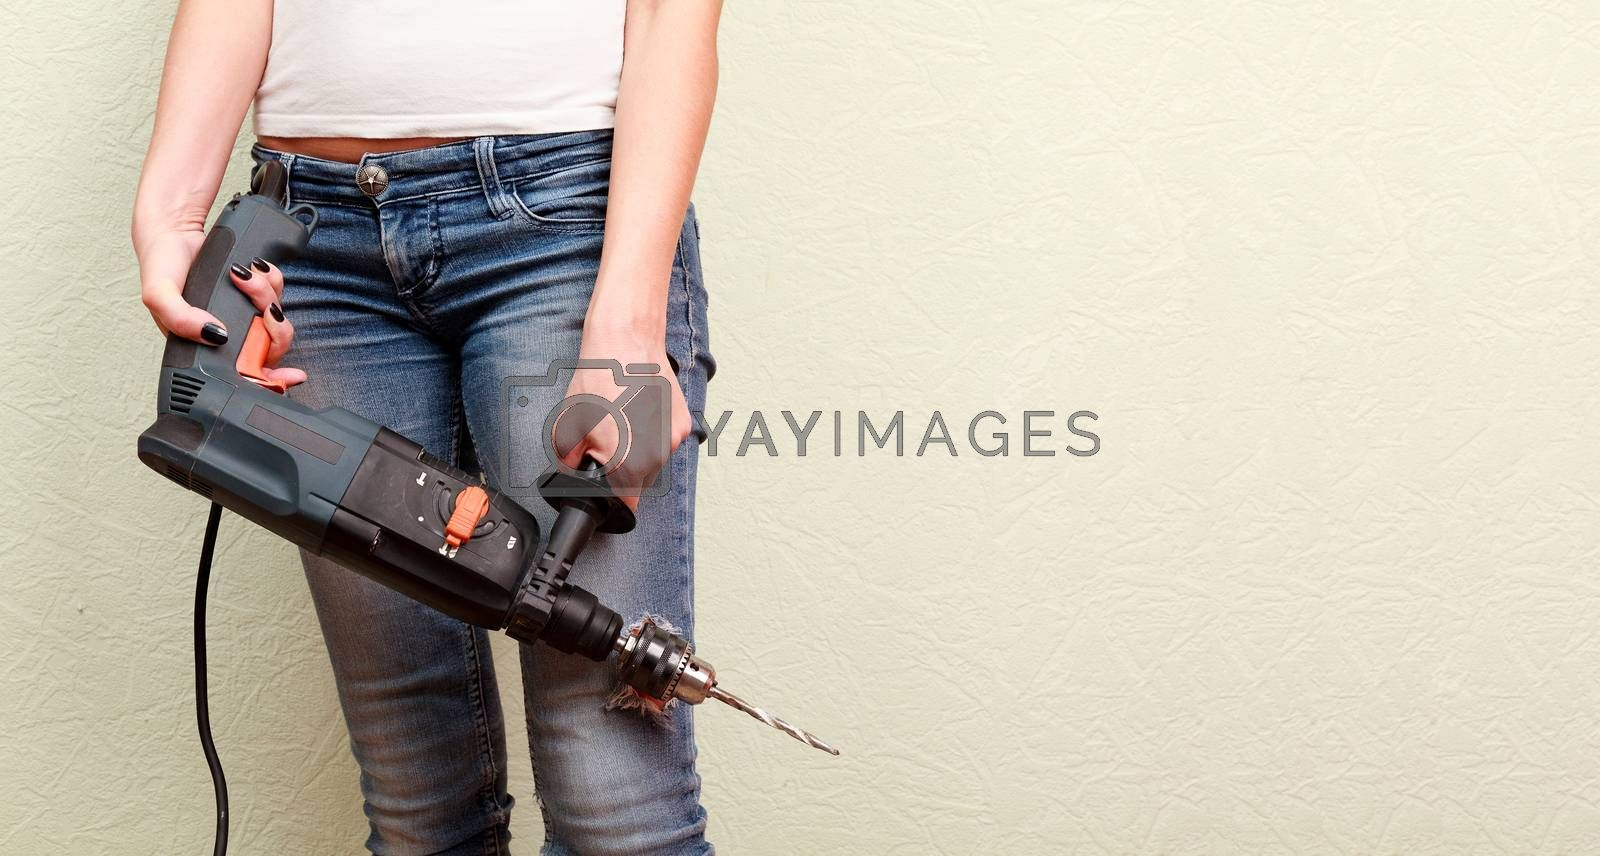 Woman holds a drill